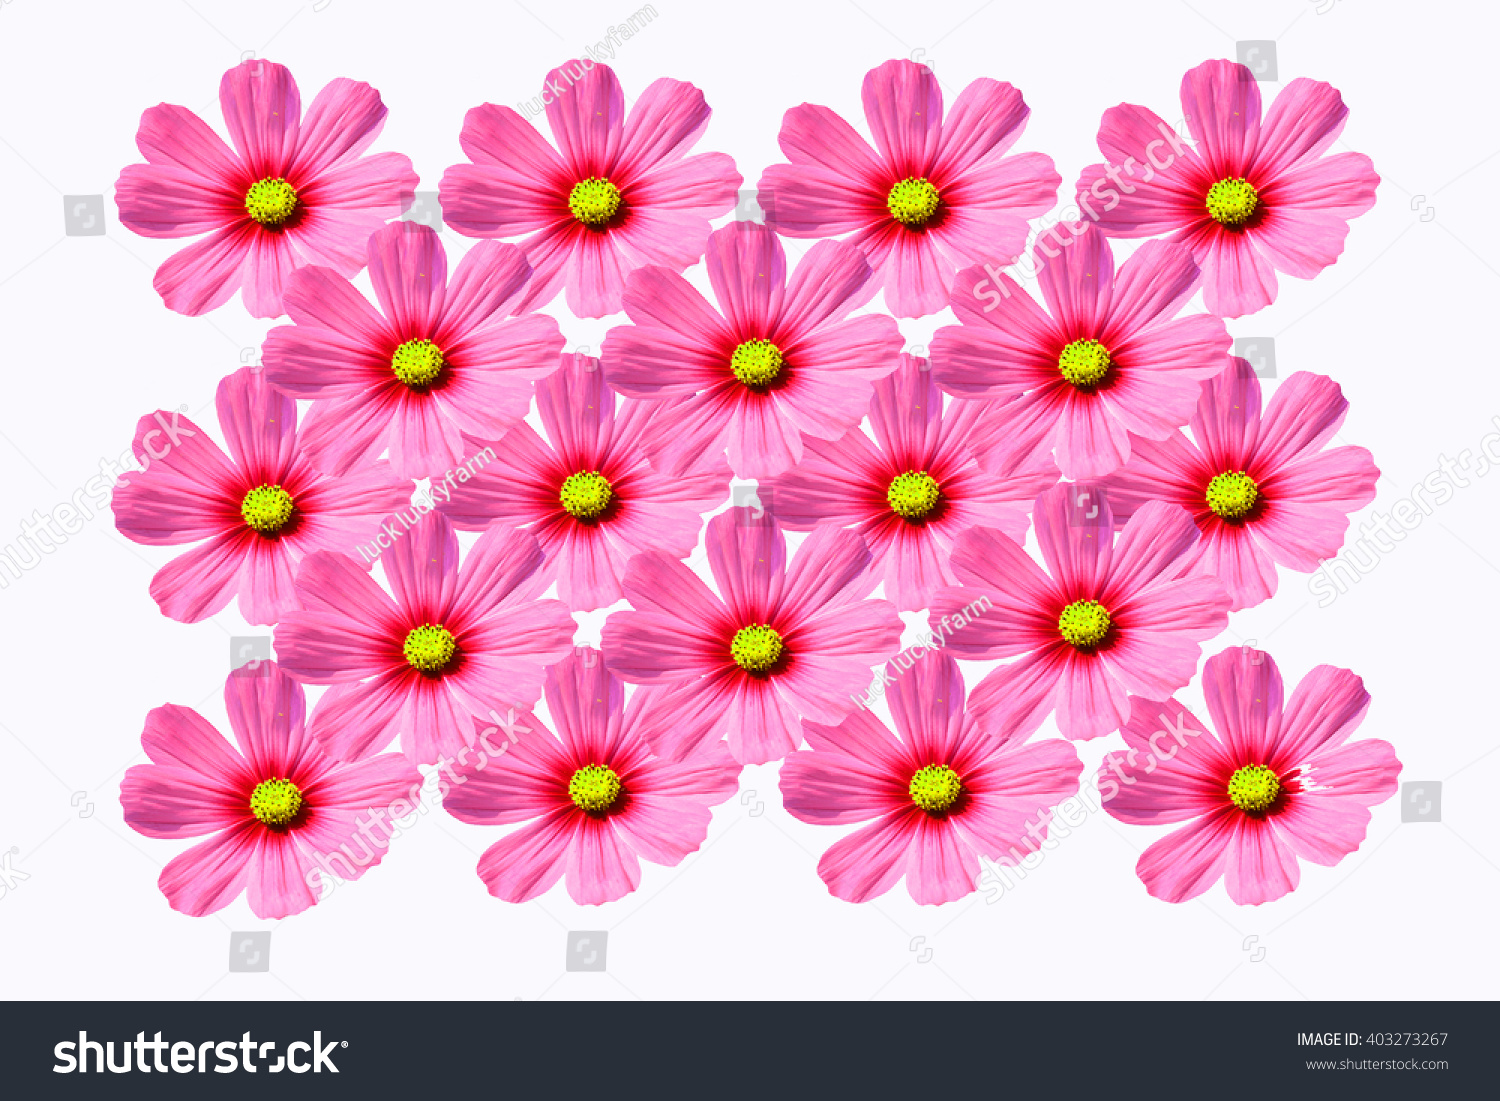 Beautiful Cosmo Flower Isolated On White Stock Photo 403273267